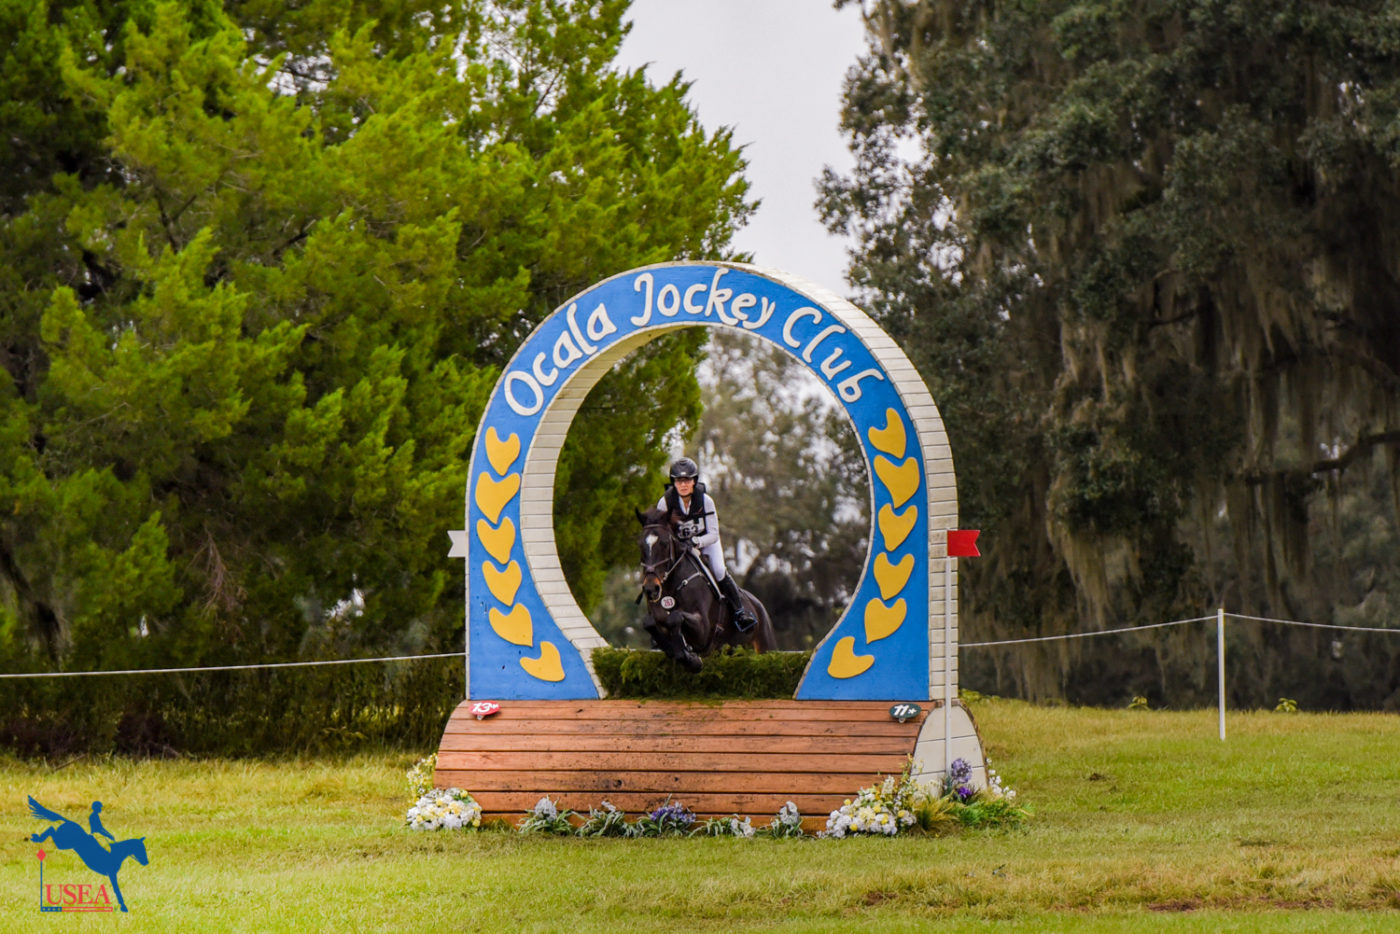 All of the levels jumped the iconic Ocala Jockey Club keyhole.